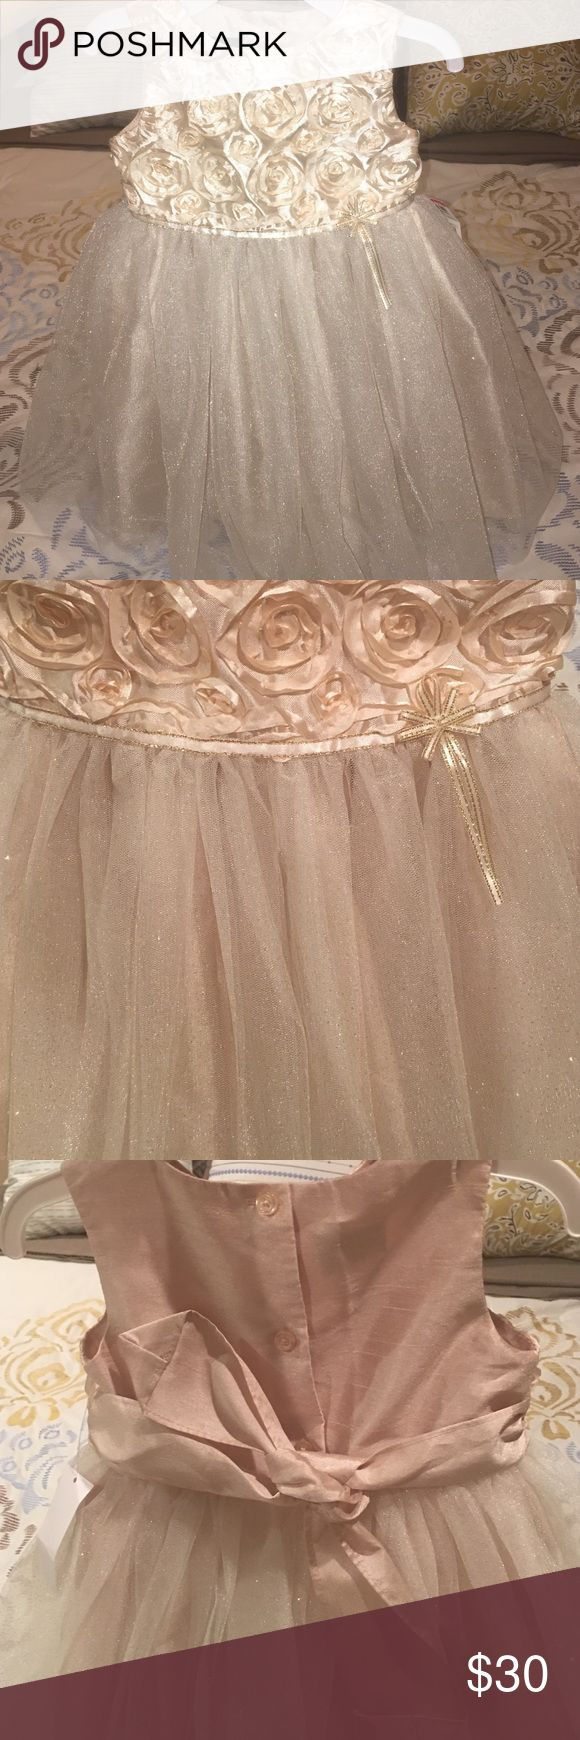 Just In Toddler Holiday Dress Brand new with tags still attached! Photos just do NOT do this dress justice! It's such a beautiful soft gold color with sparkles embedded in the tule, so there is no fallout. Bottom portion fluffs out as if it had a petty coat underneath but as shown in final photo it only has the 2 layers. Back buttons to help get your little one in and out. Price is firm as I purchased this for my daughter for an upcoming wedding but it didn't fit her and I missed the return…